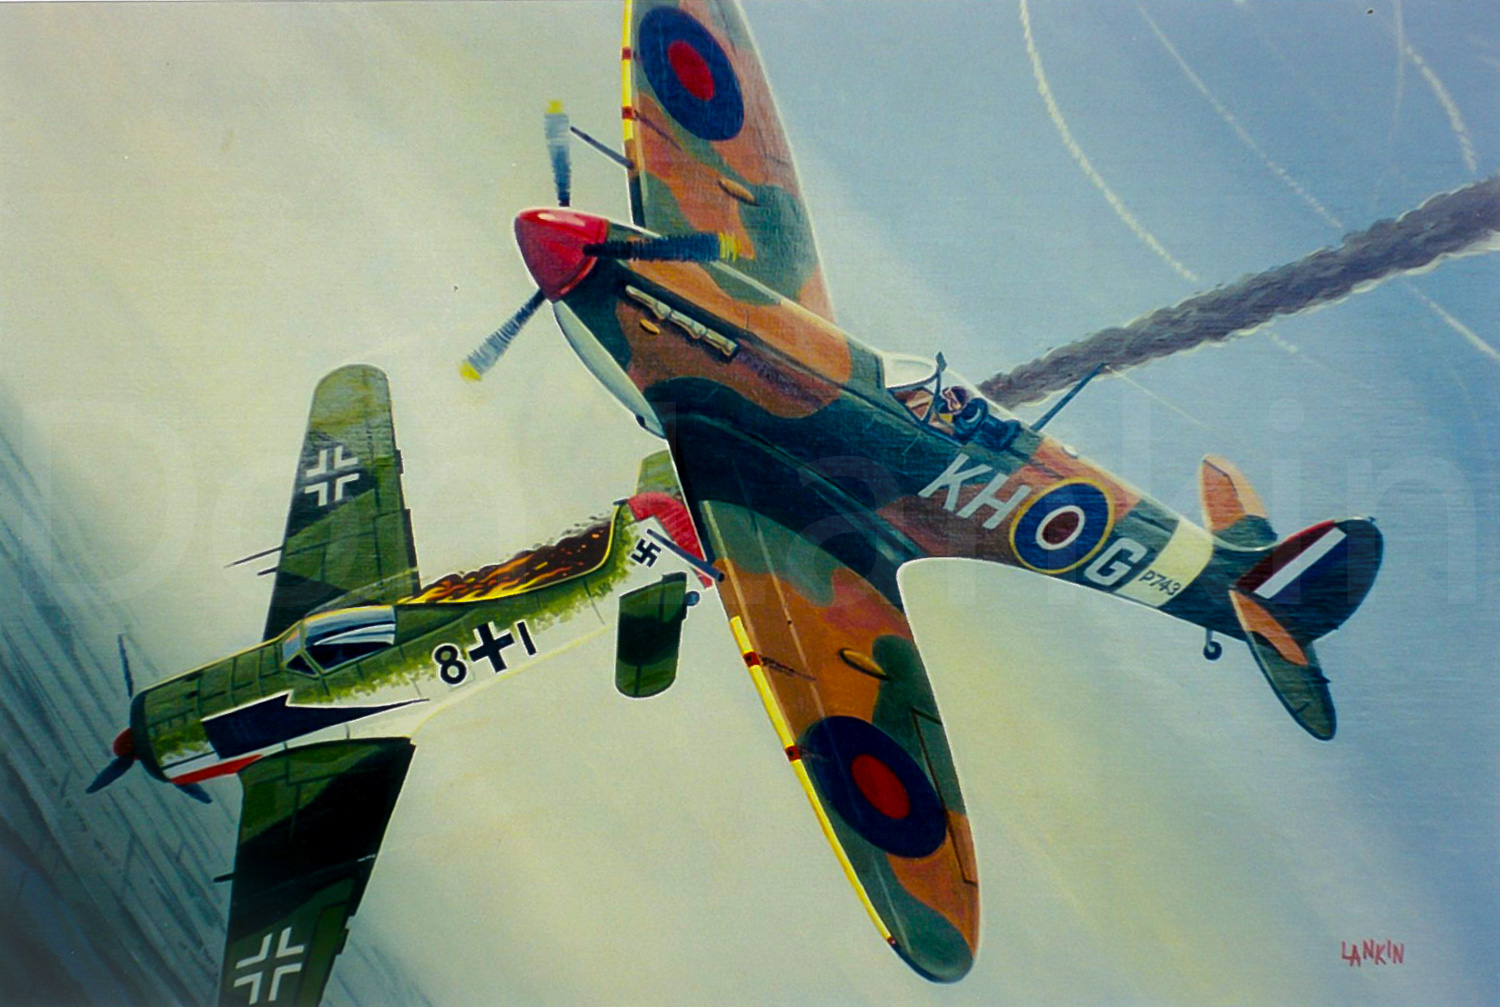 403 Squadron Spitfire Mk. VB dispatches Fock-Wulf FW 190A